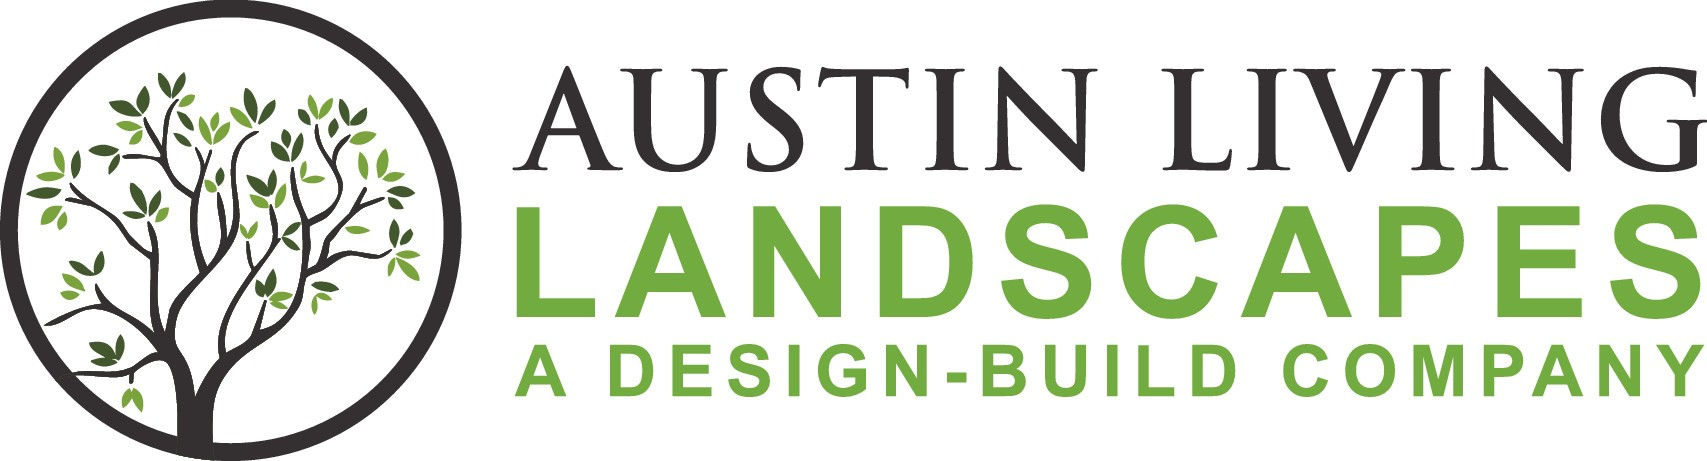 Create a fantastic logo and website for a landscape design company in Austin!!!